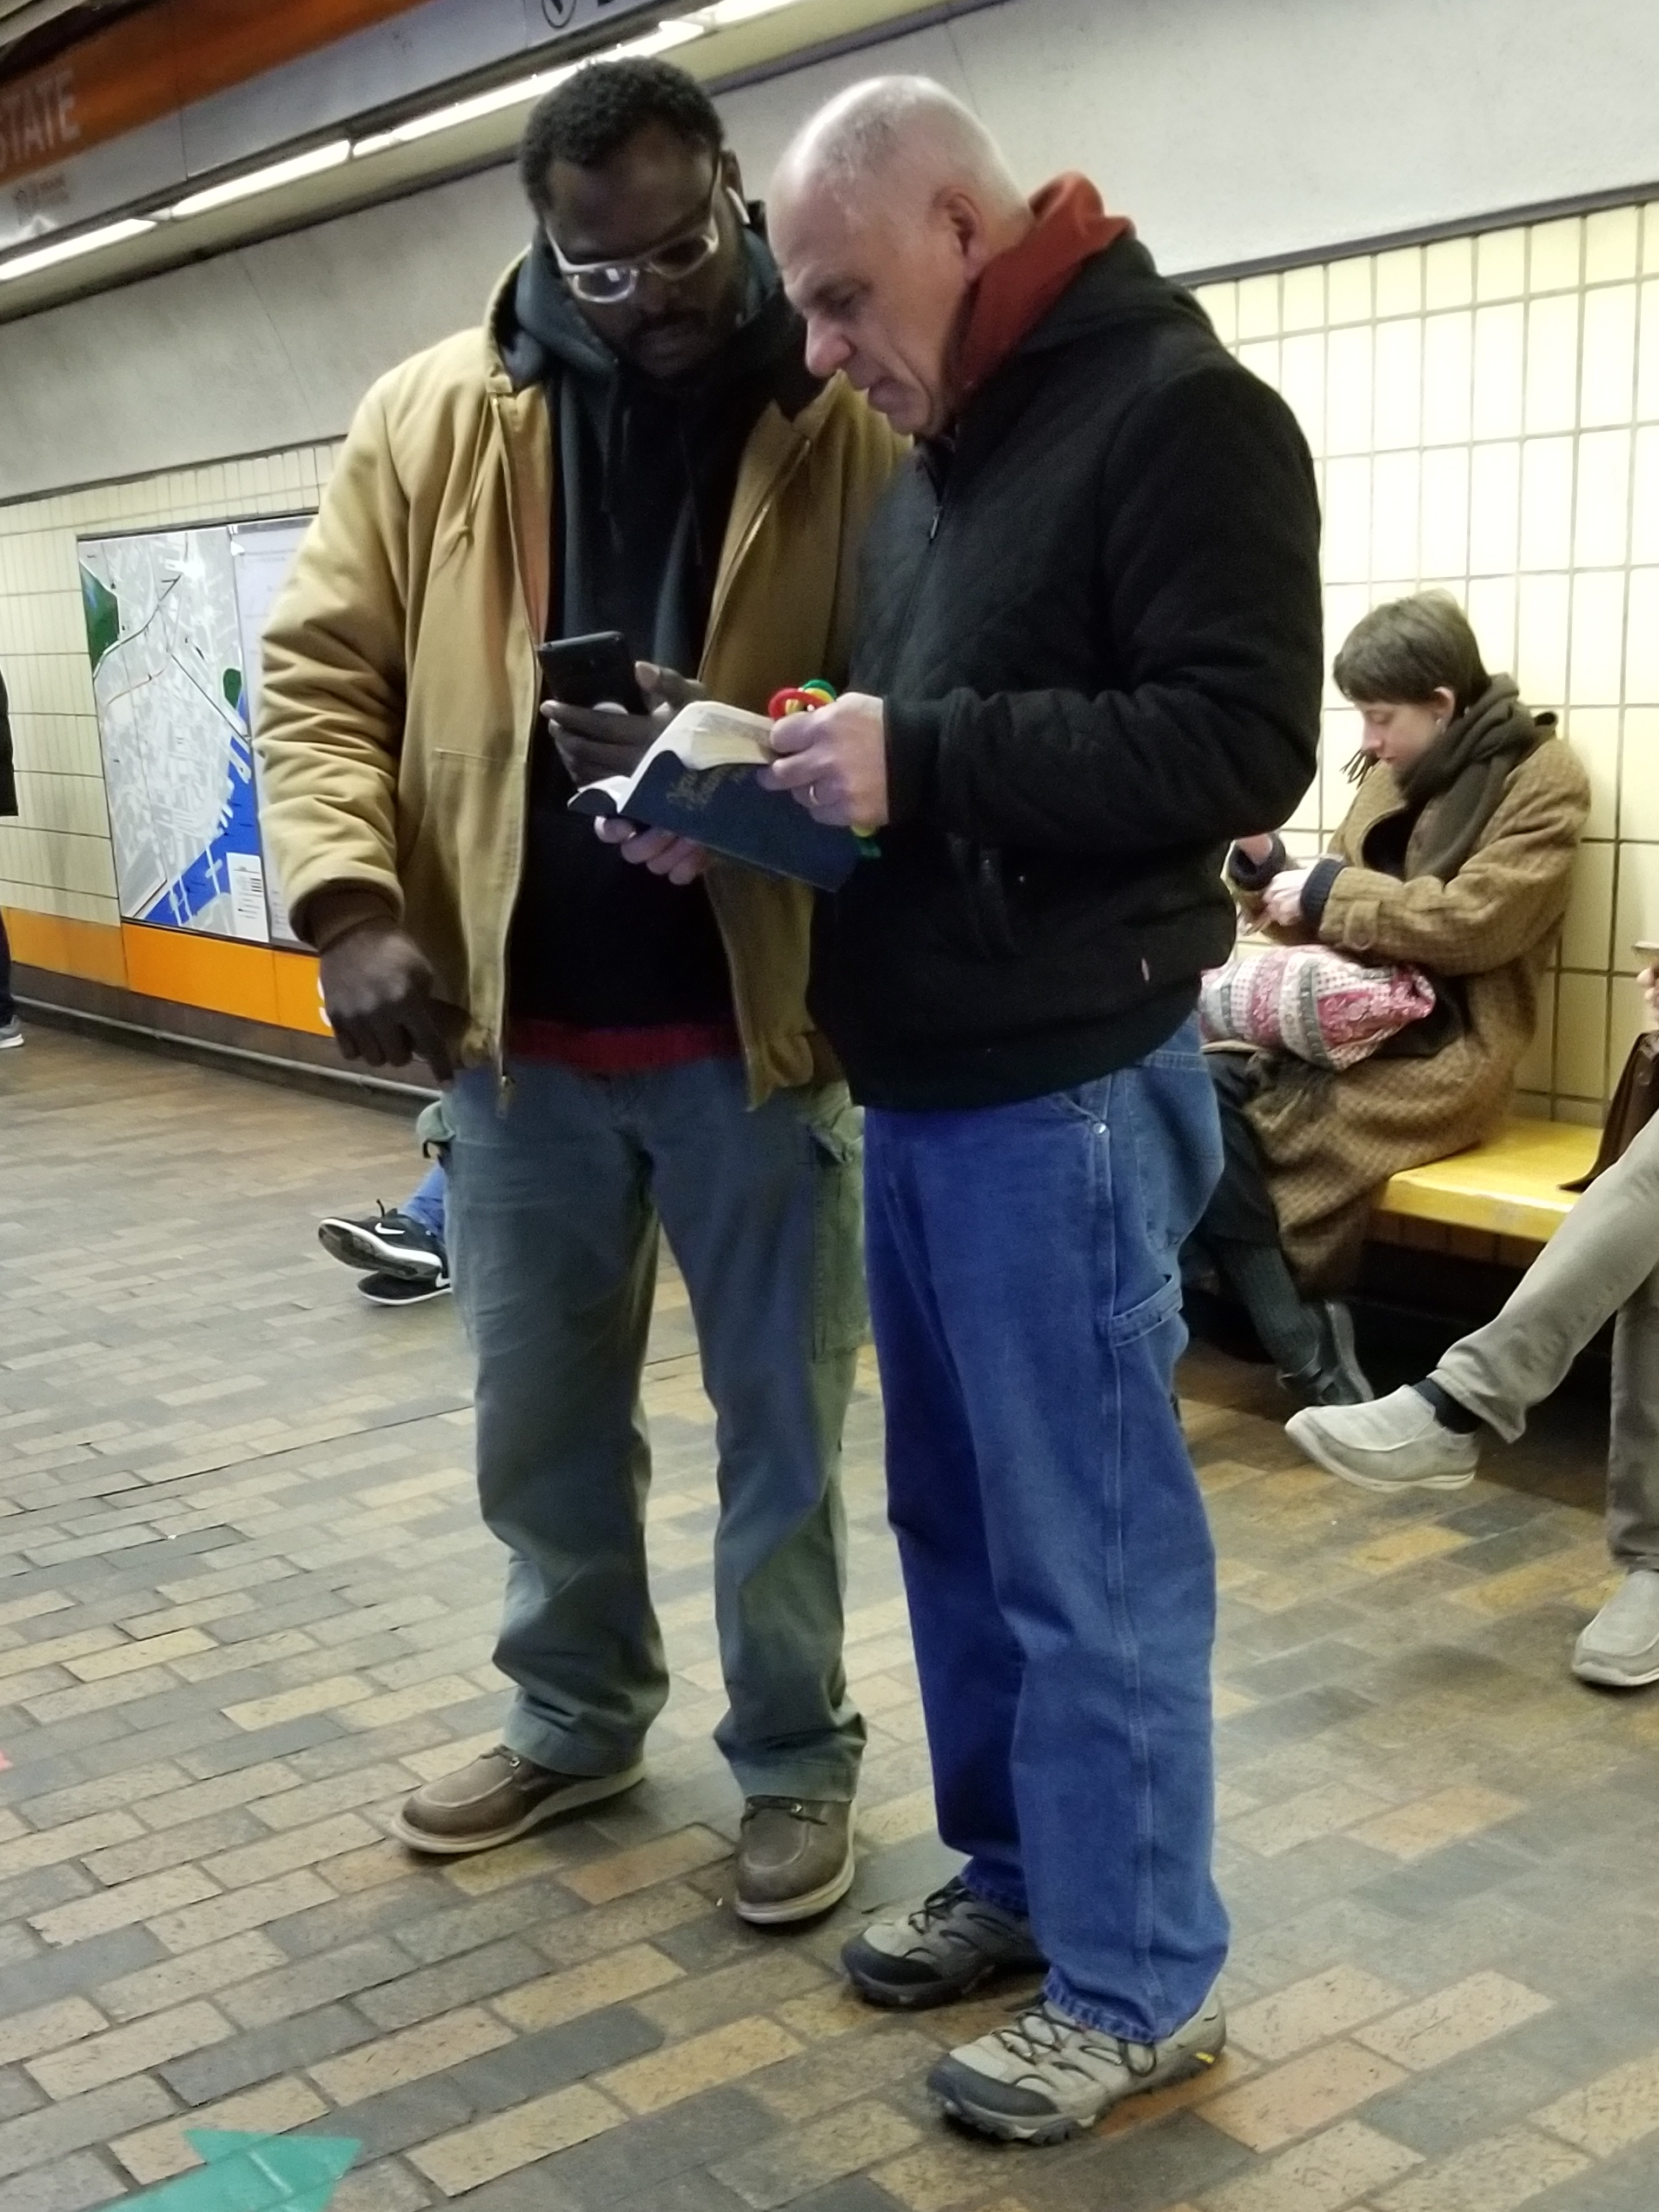 """Remember Dowuda, the Black Israelite who was so disruptive? The next week we ran into him AGAIN! At first he was civil, asking Eric to look up Bible verses. But that didn't last long. He began YELLING to the crowd that Eric is a paedophile. I tried to reason with him that it's not godly or even polite to make such a charge with no evidence, and he called me a """"Fake Jew"""" and YELLED to everyone that I'm a paedophile too. He YELLED that Jesus was black, and Moses was black. And he told us to read the King James Bible only, and that King James was black. (Uhm, we have paintings of him - he wasn't black.) Sadly, this is what Black Hebrew Israelites are taught to do. They yell and swear and use disgusting name calling. Please pray for Dowuda, that he'll know the true love of Christ. And to learn more about his beliefs, https://carm.org/black-hebrew-israelites."""